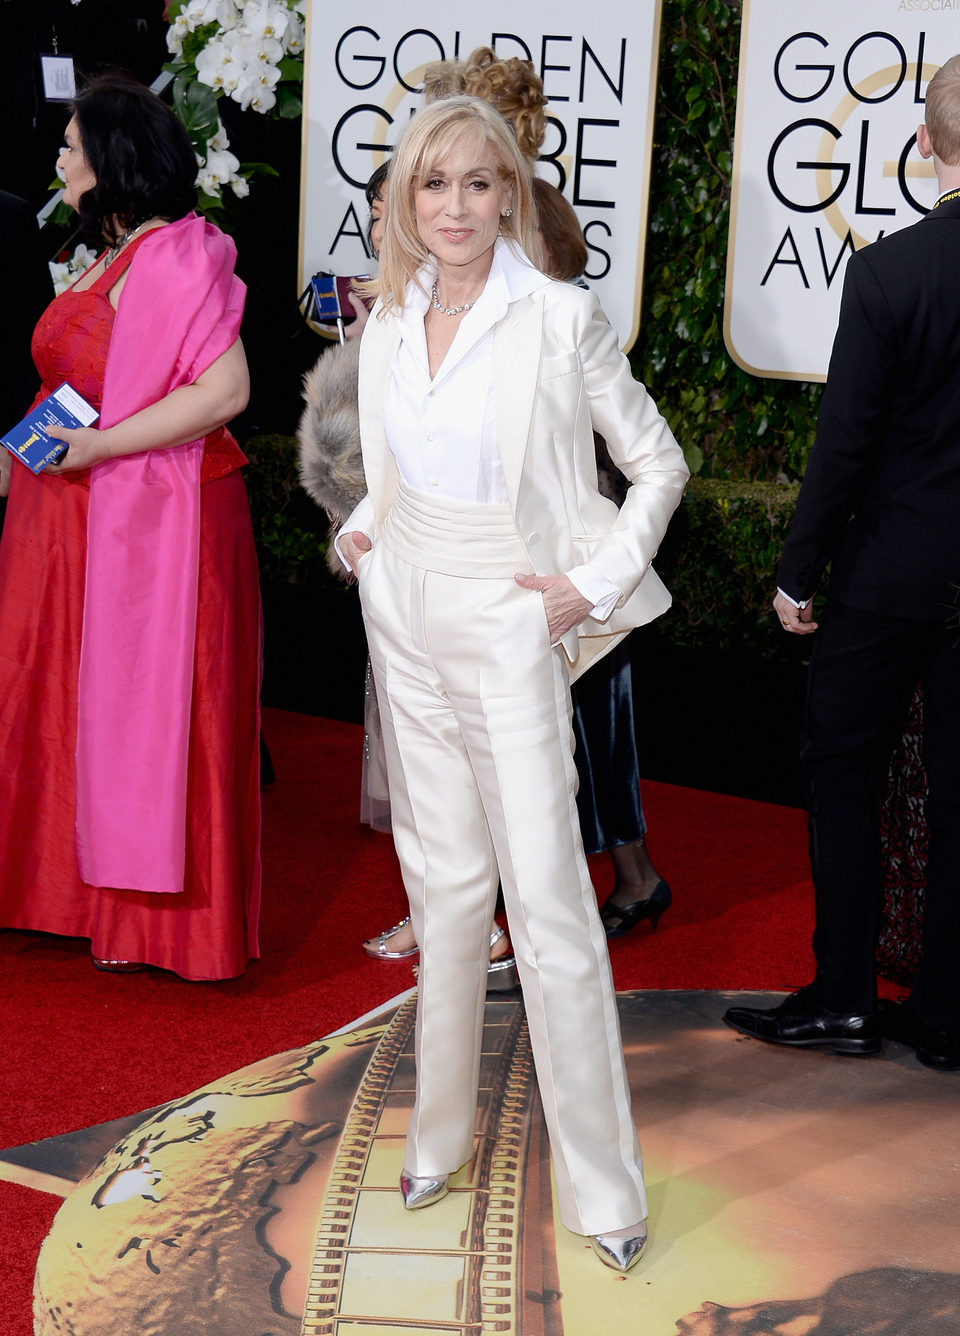 Judith Light in the 2016 Golden Globes red carpet